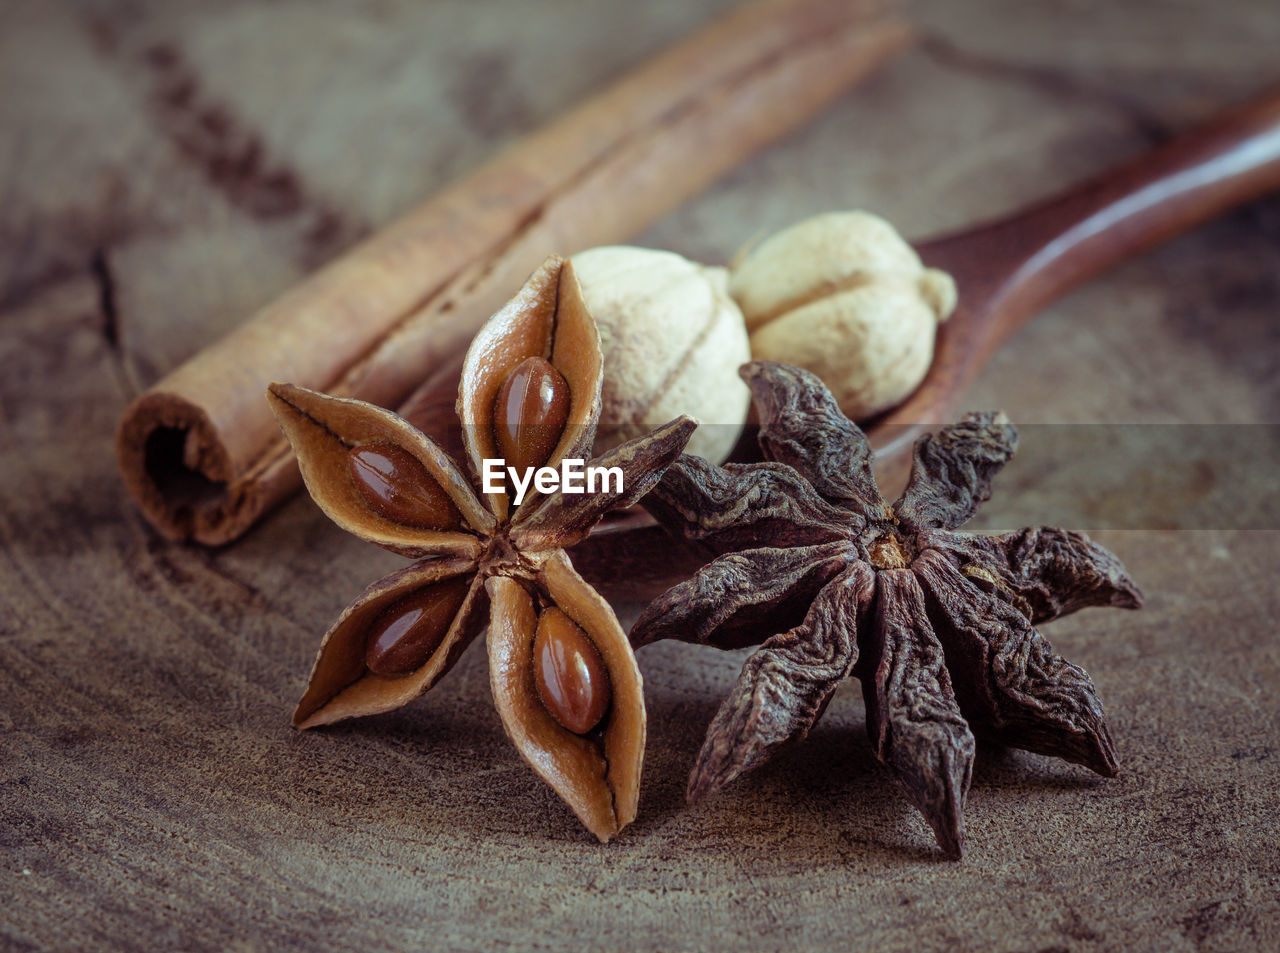 food, spice, food and drink, still life, close-up, star anise, no people, ingredient, freshness, wood - material, table, star shape, spoon, eating utensil, kitchen utensil, focus on foreground, brown, cinnamon, healthy eating, wellbeing, anise, cardamom